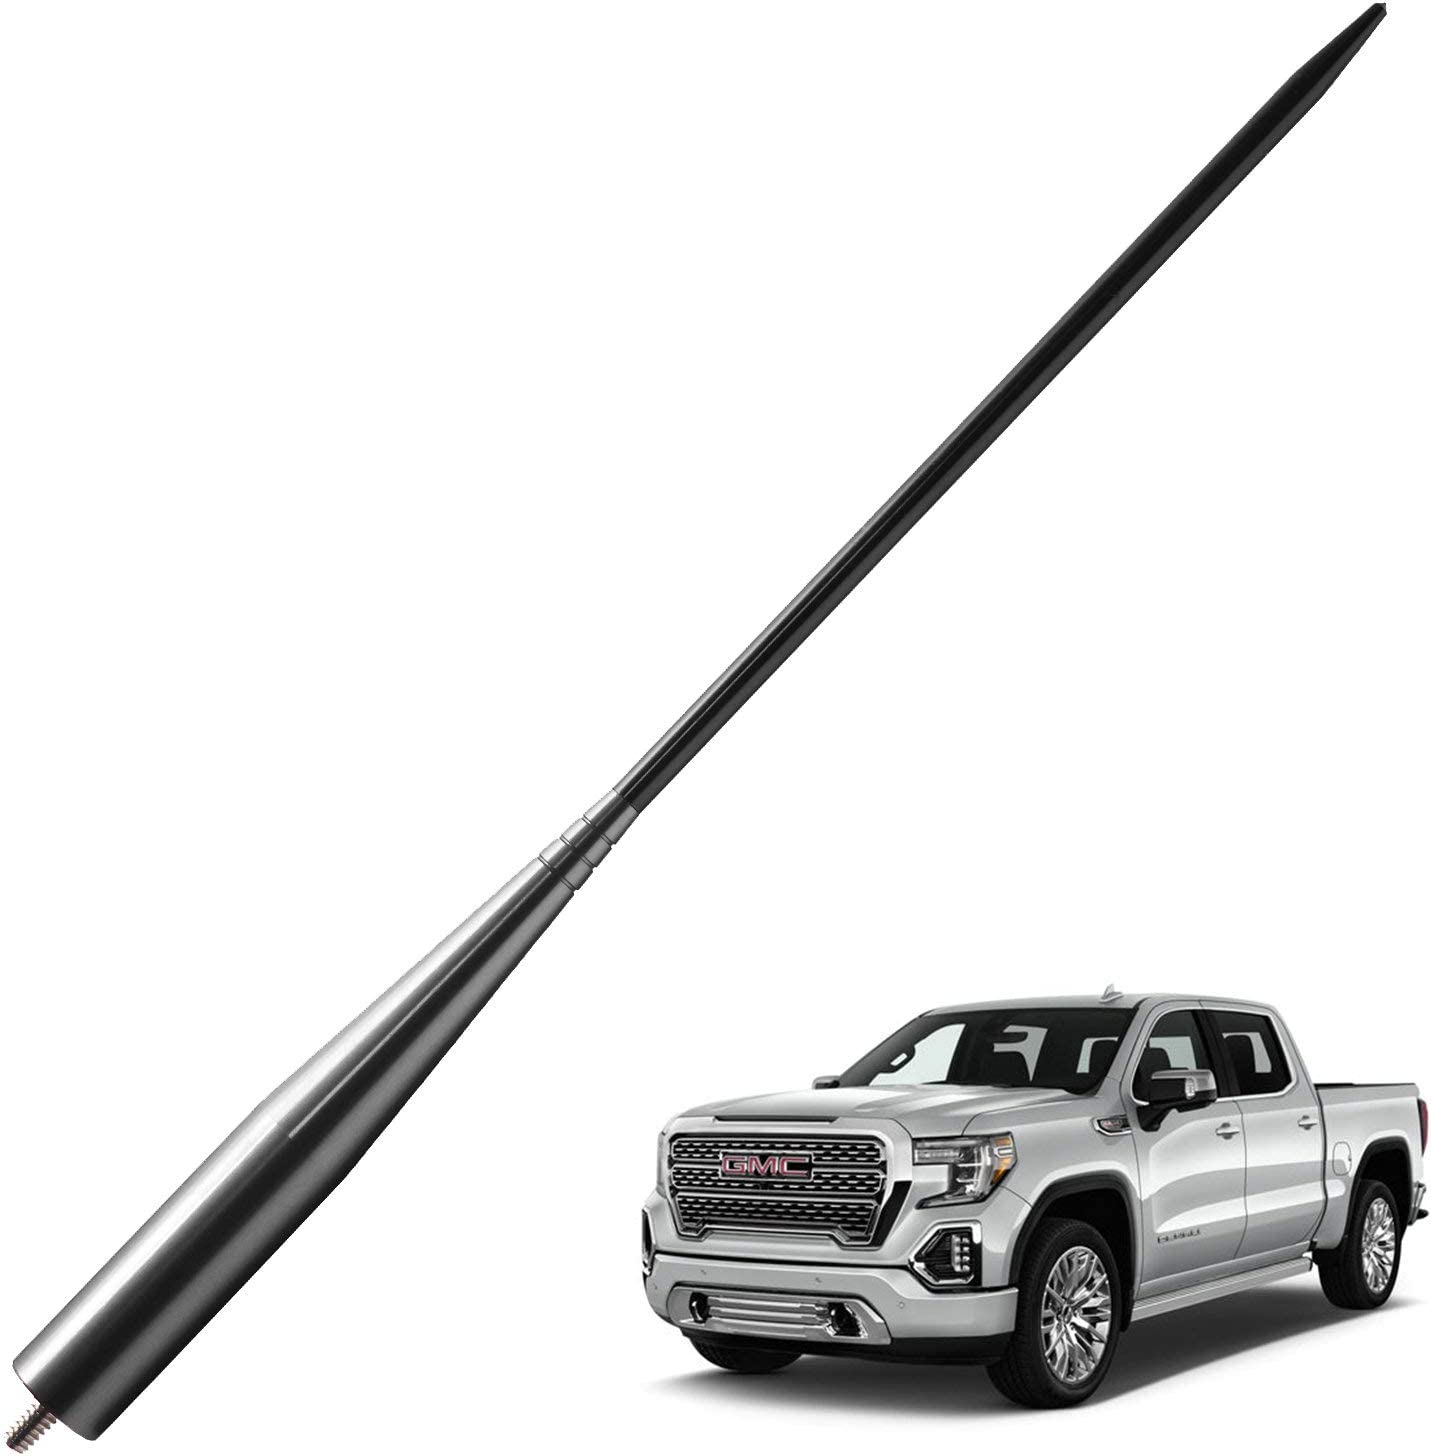 13 inches-Titanium Black JAPower Replacement Antenna Compatible with Nissan Frontier 1998-2019